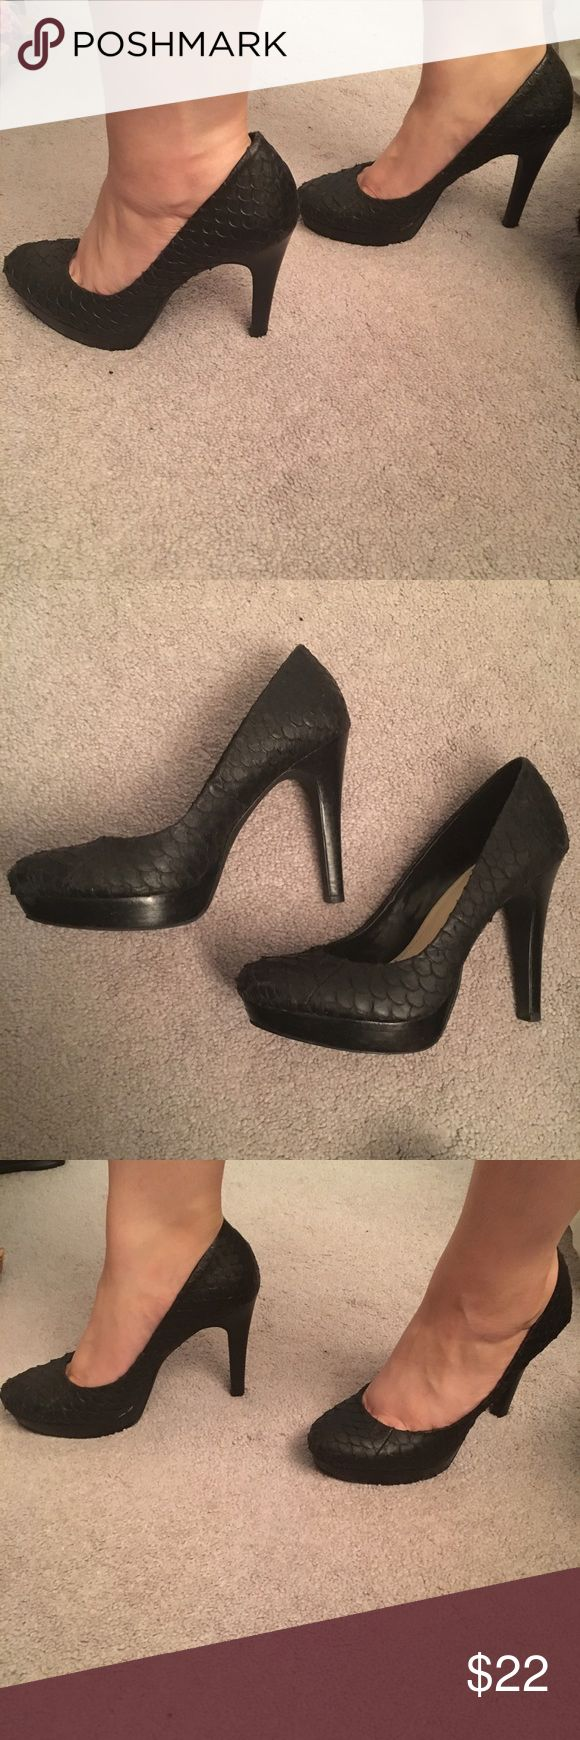 Black fish scale patterned pumps Pre-loved with lots of life left! These super cute pumps have a fish scale pattern that is so fun! Great for a night out on the town with the ladies or date night! Calvin Klein Shoes Heels